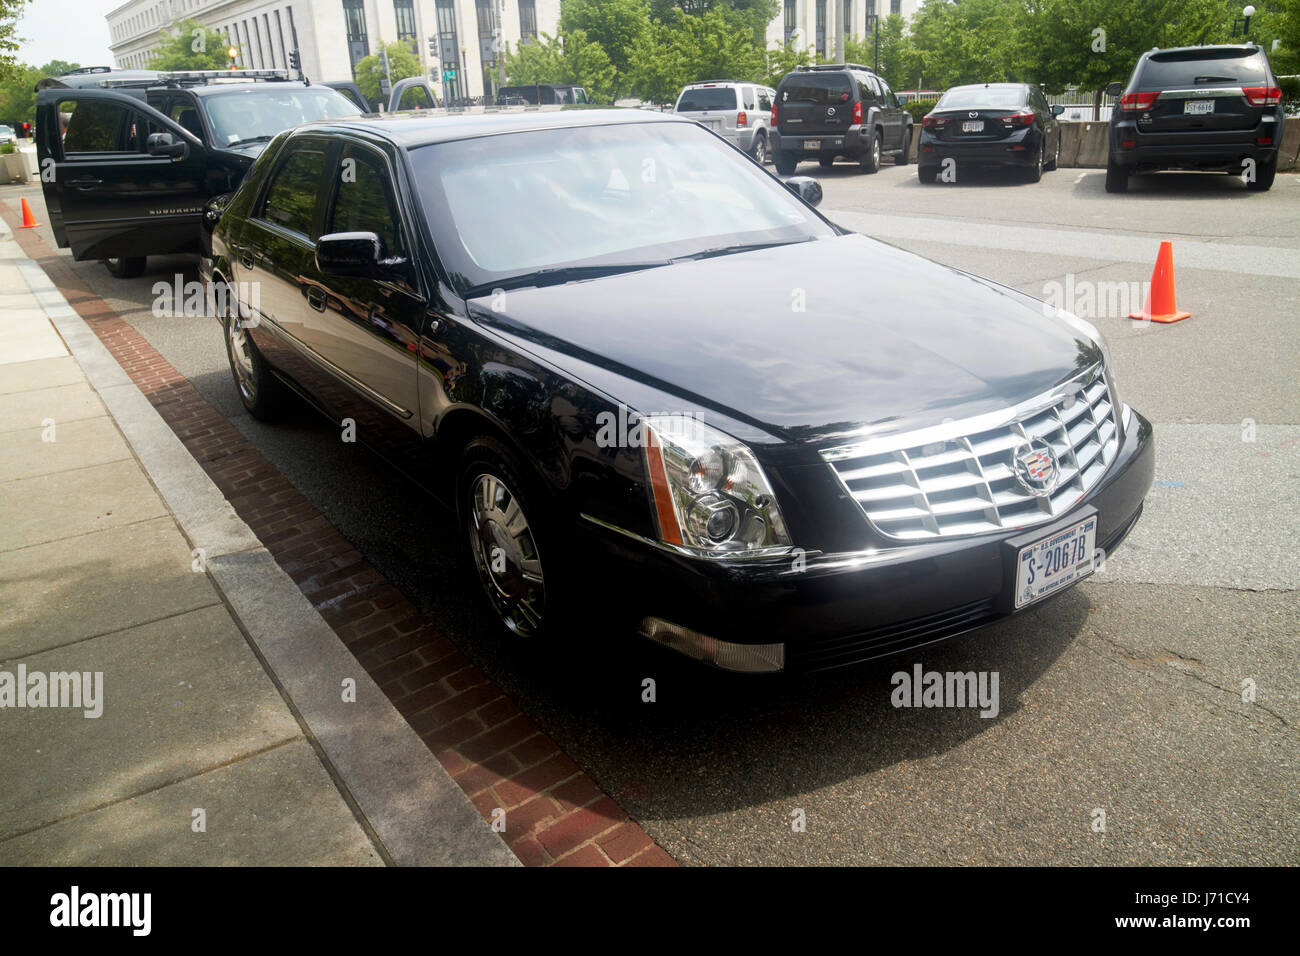 hight resolution of state department armored cadillac dts deville sedan vehicle washington dc usa stock image